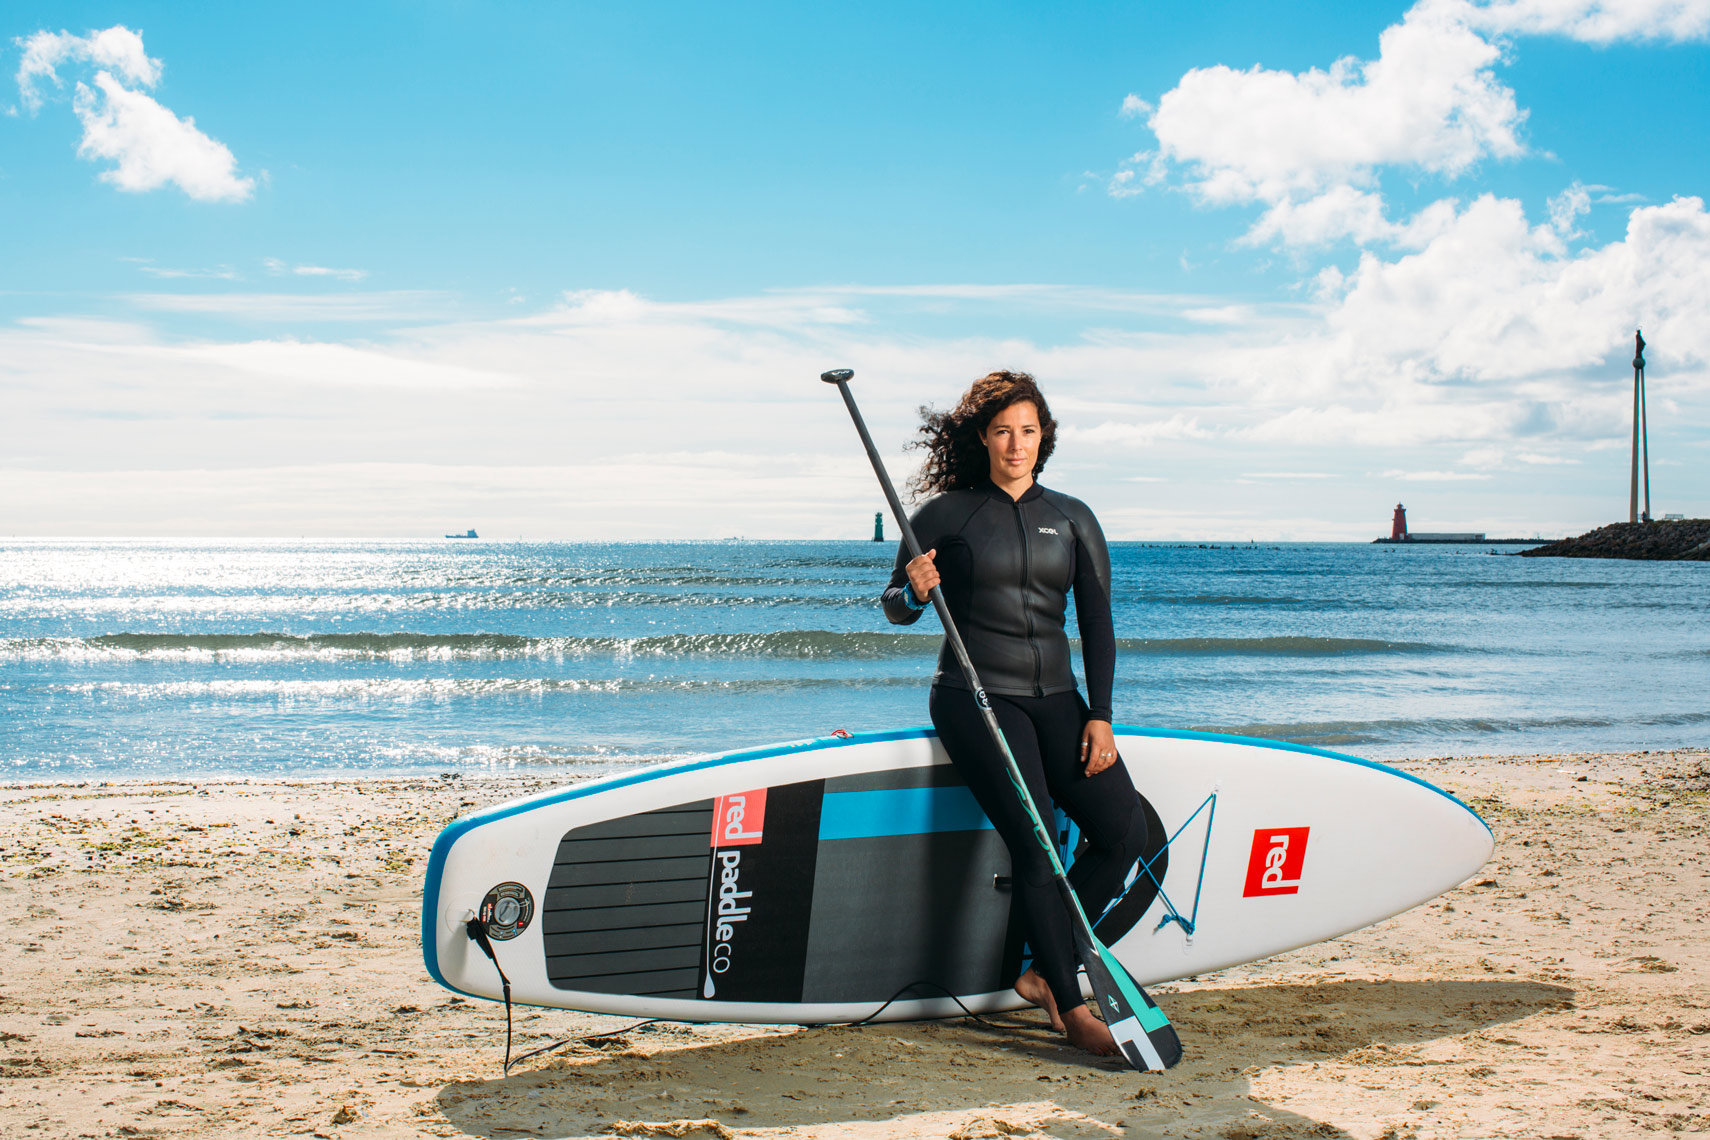 athlete portraits: a paddleboarder on beach